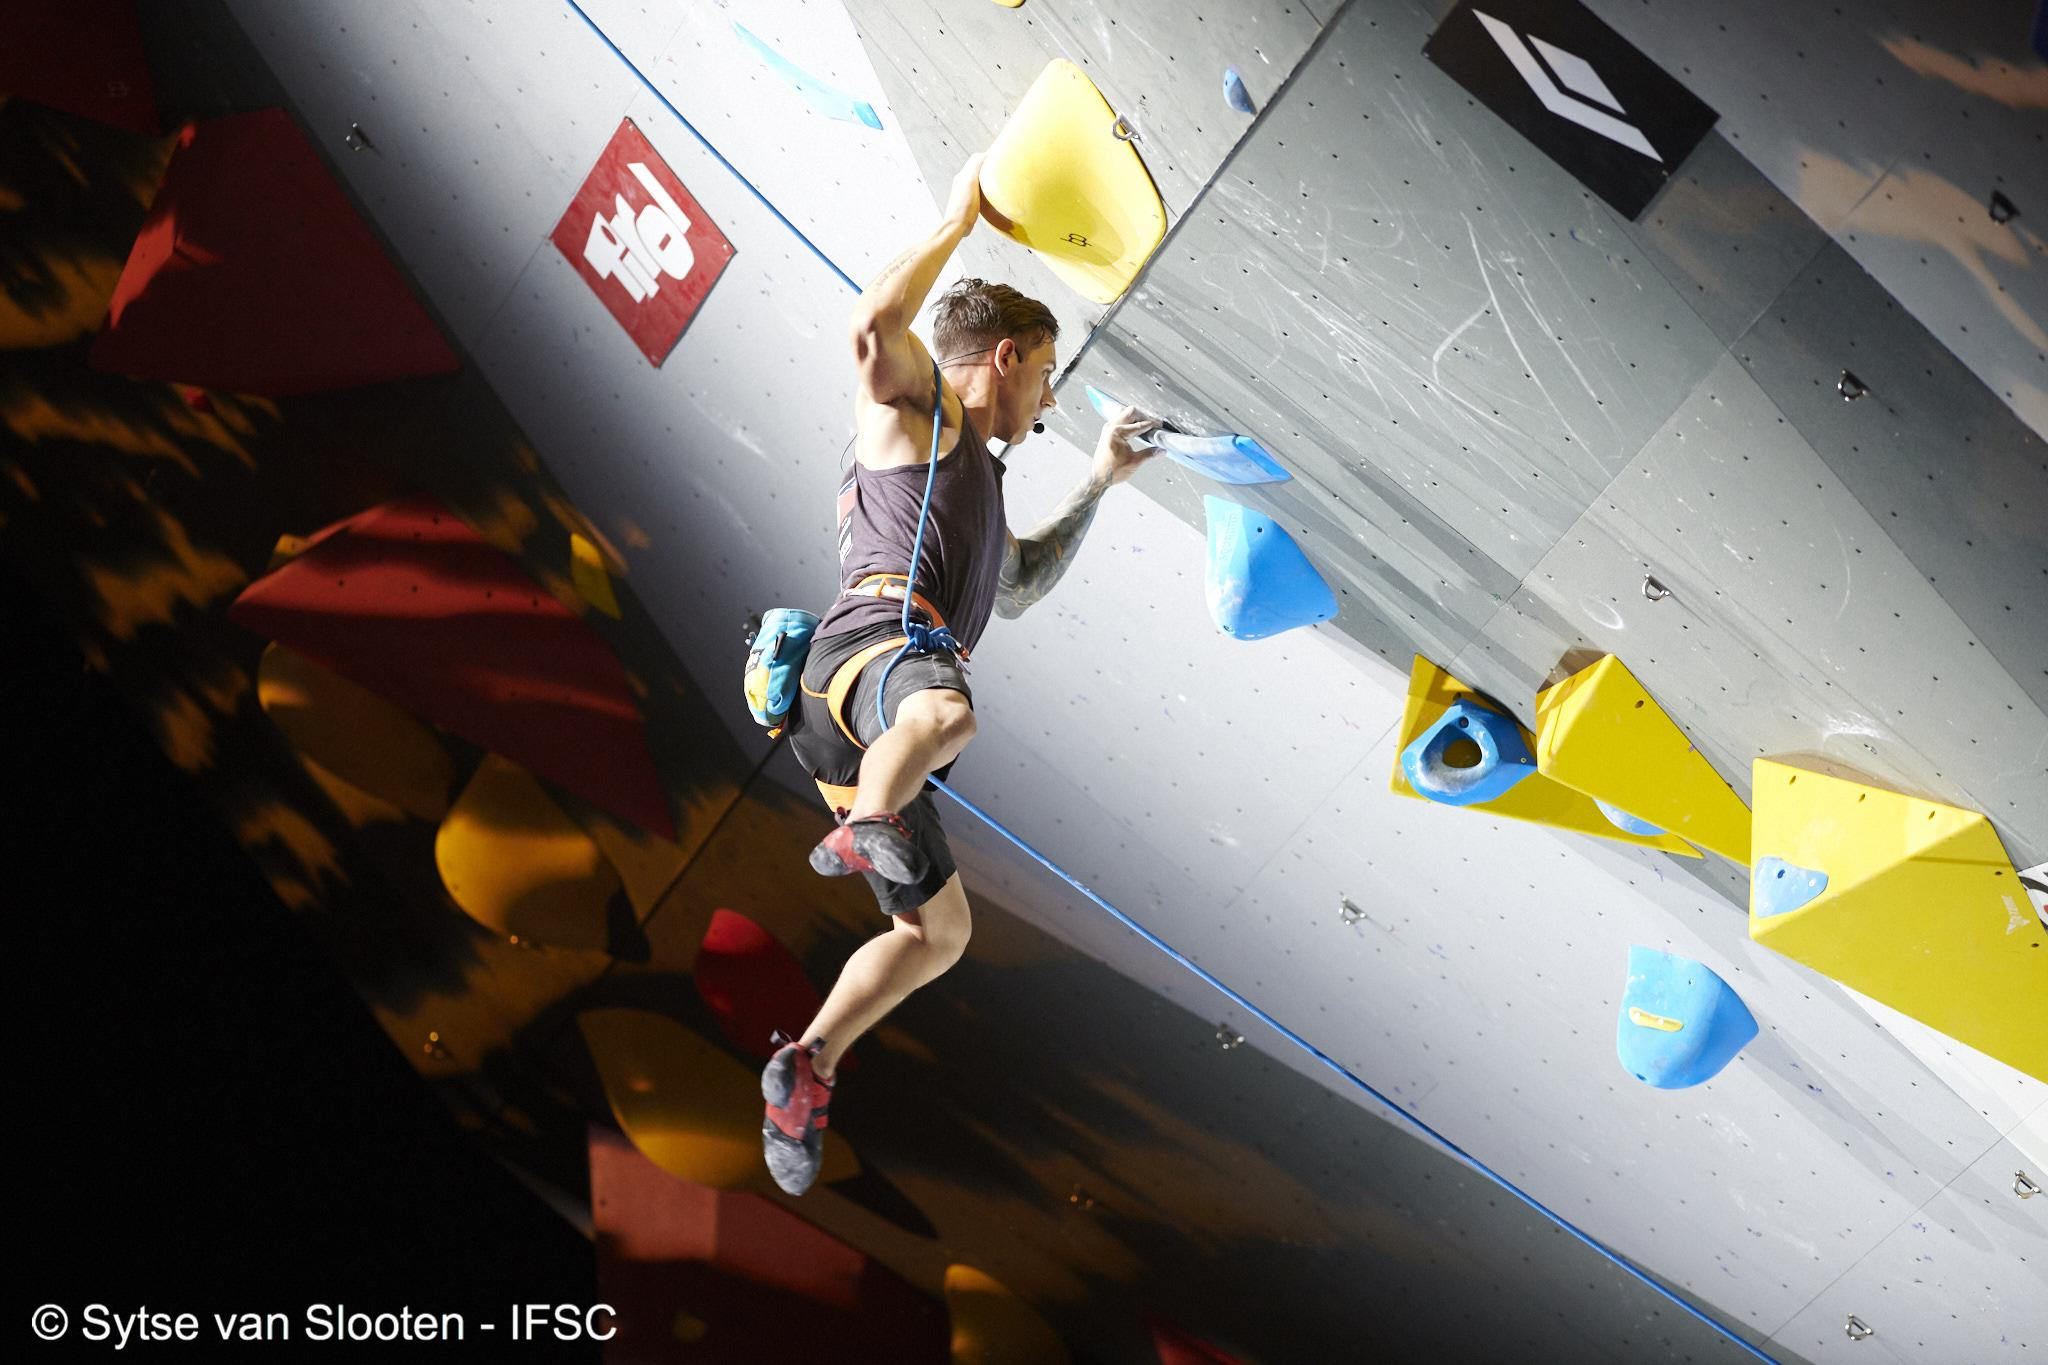 210323 IFSC Press Release Third Paraclimbing World Cup of the season to take place in Los Angeles